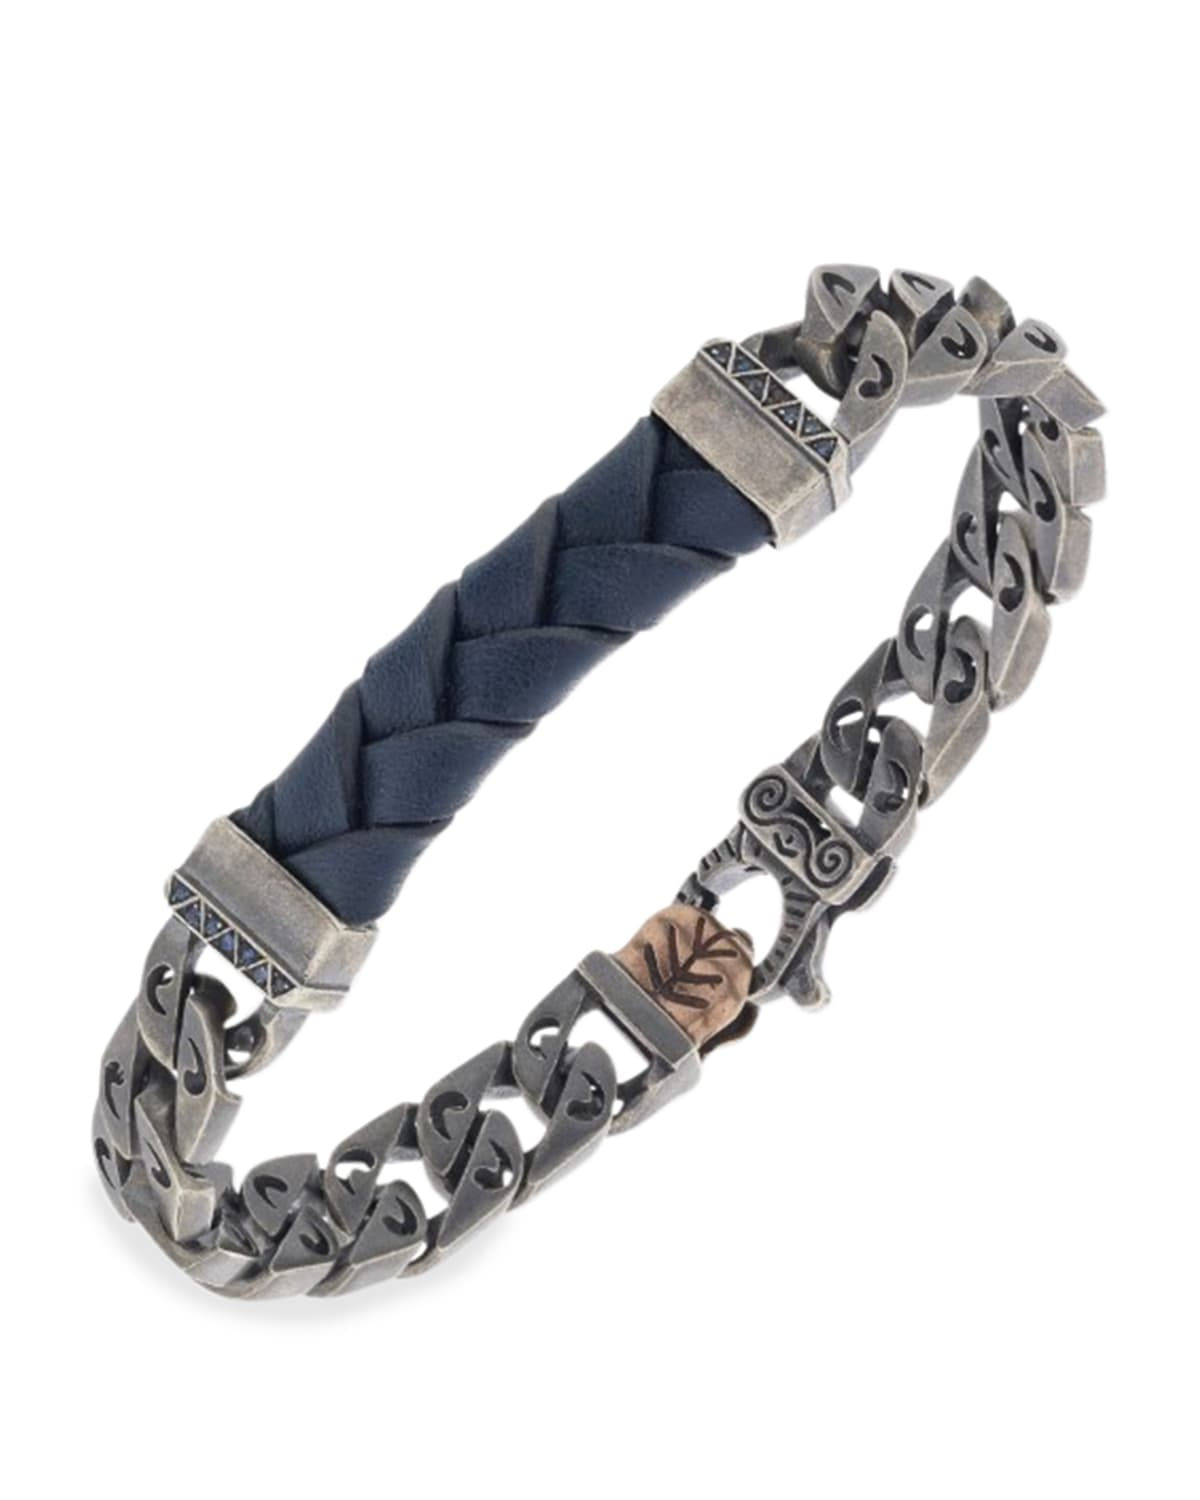 Flaming Tongue Leather Chain Bracelet with Blue Sapphires